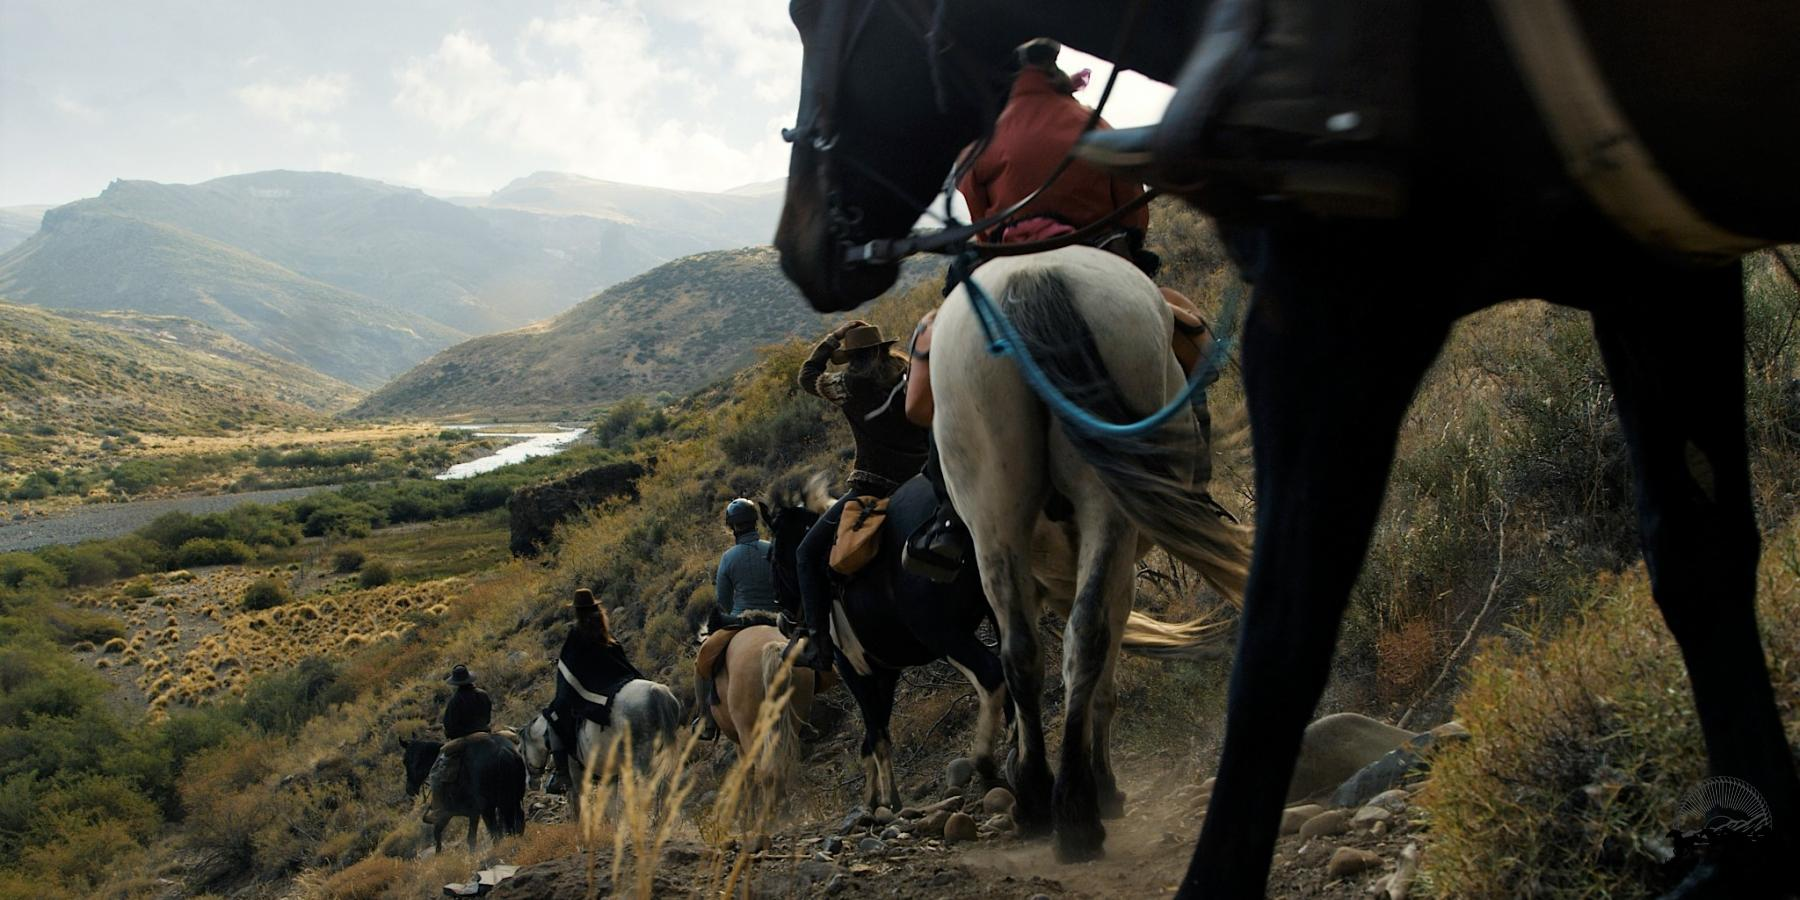 String of riders descending into a river valley in the backcountry of Estancia Ranquilco